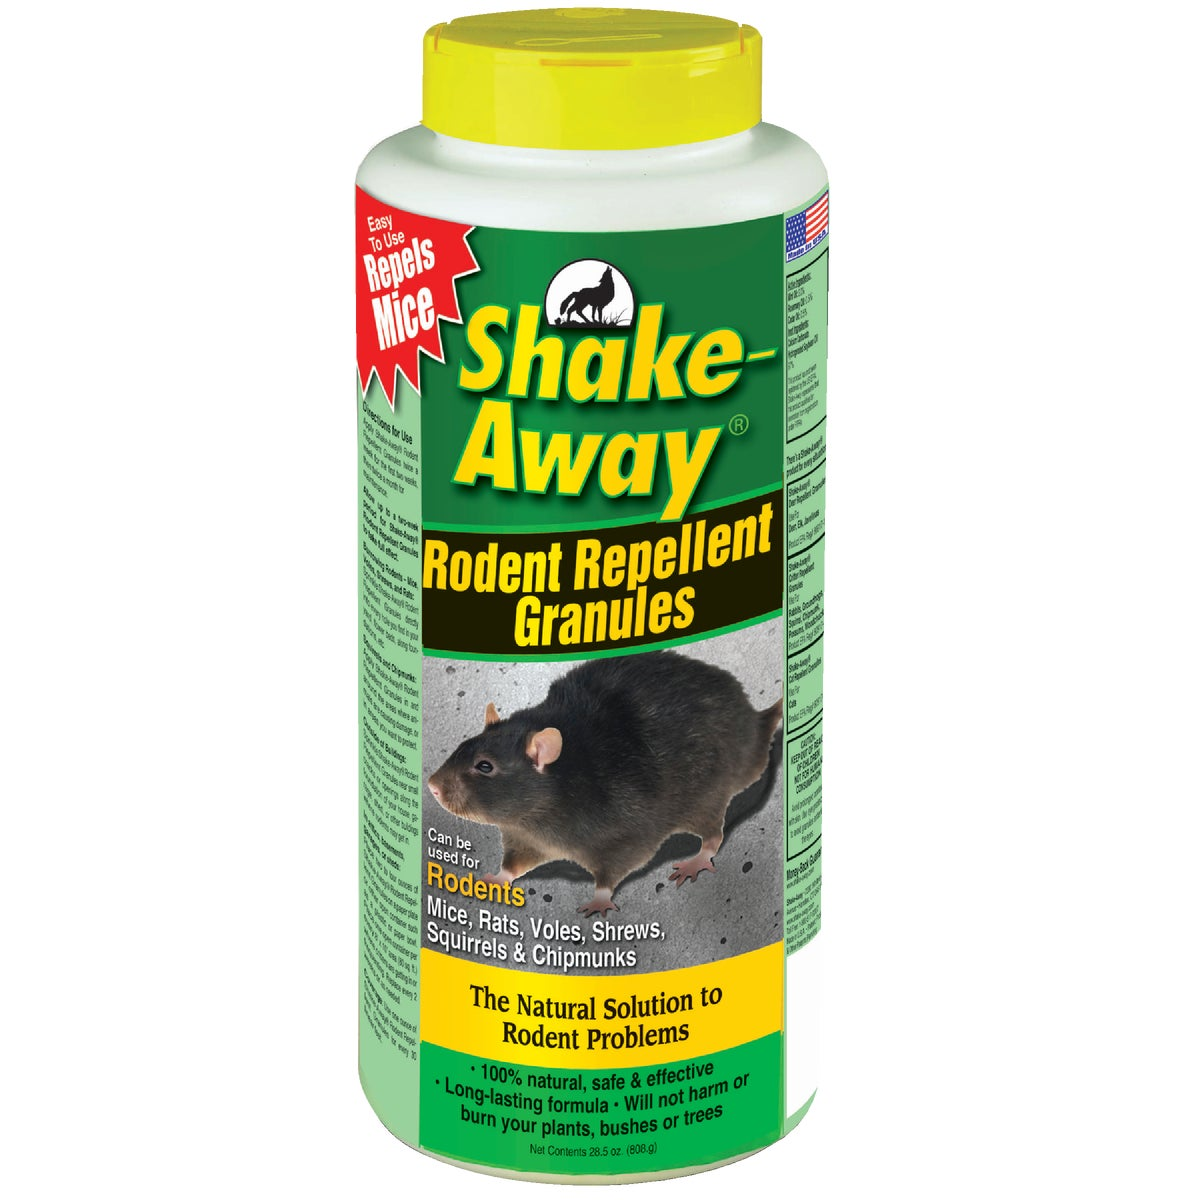 28.5OZ RODENT REPELLENT - 2853338 by Shake Away